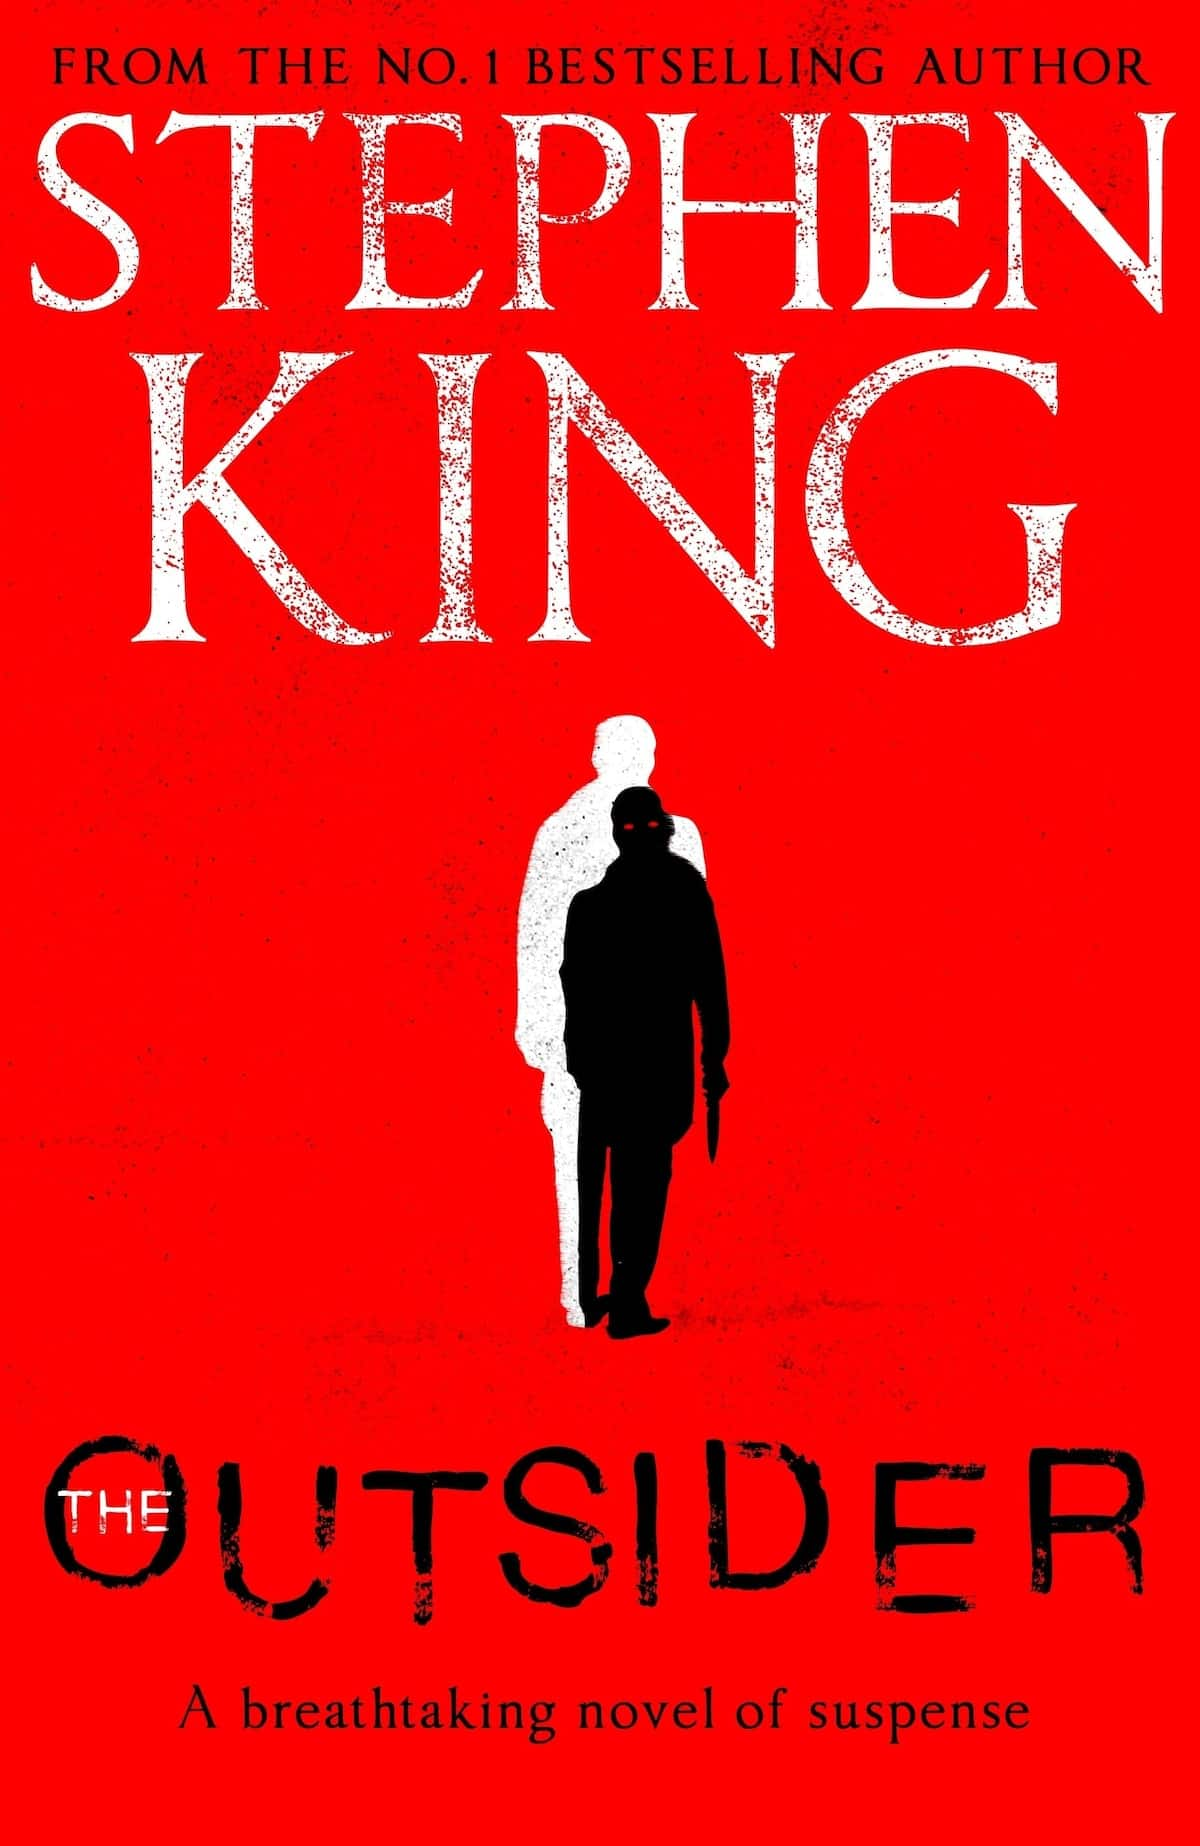 Stephen king books, Best Stephen king books, Stephen king books, ranked,Stephen king books in order, List of Stephen king books,New, Stephen king books, Latest Stephen king books,Stephen king books 2018